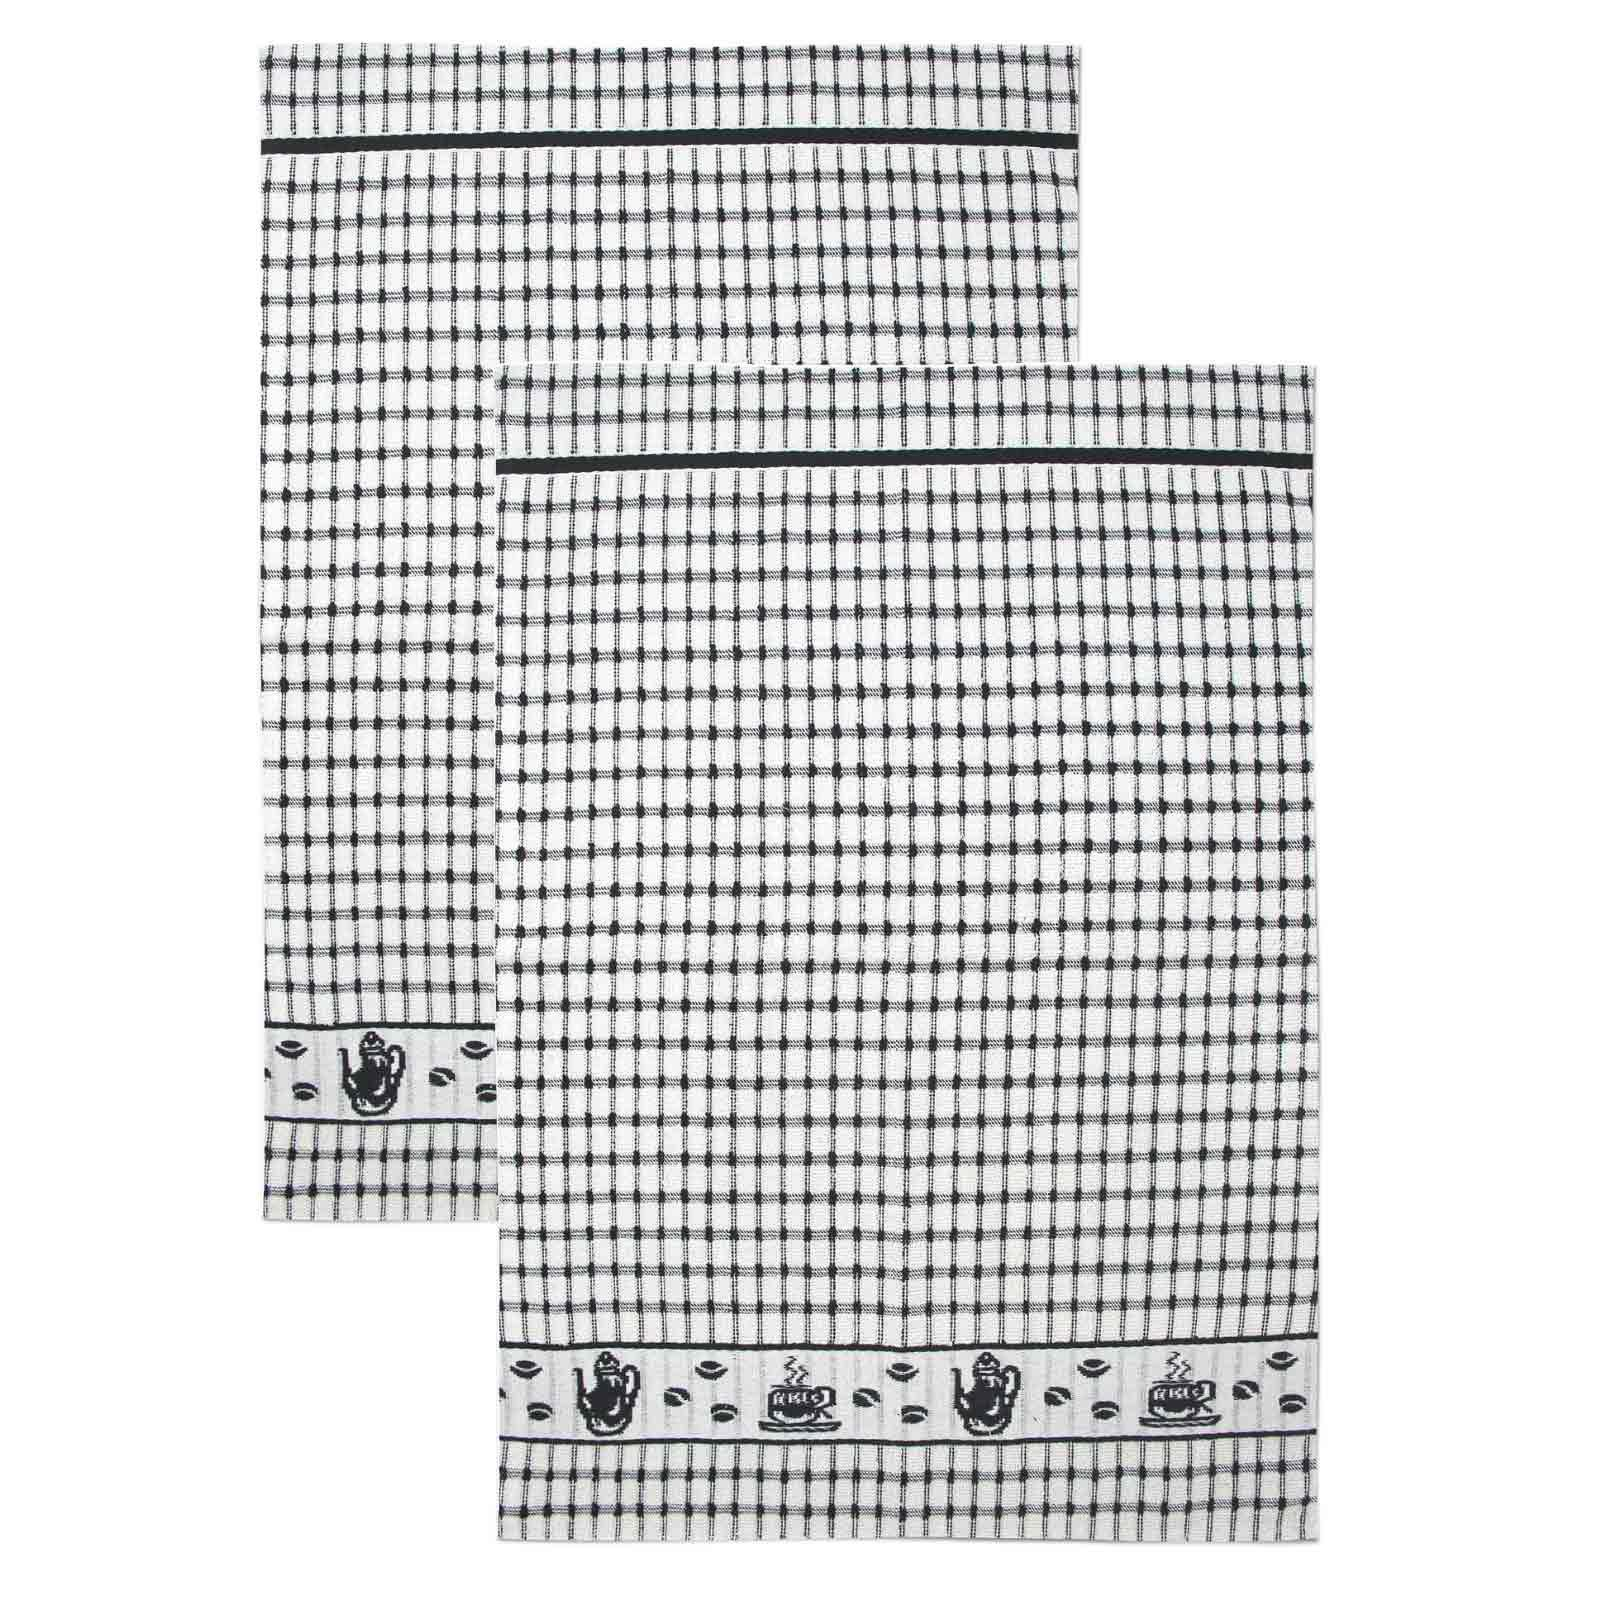 Packs-of-2-4-6-12-Tea-Towels-100-Cotton-Terry-Kitchen-Dish-Drying-Towel-Sets thumbnail 28